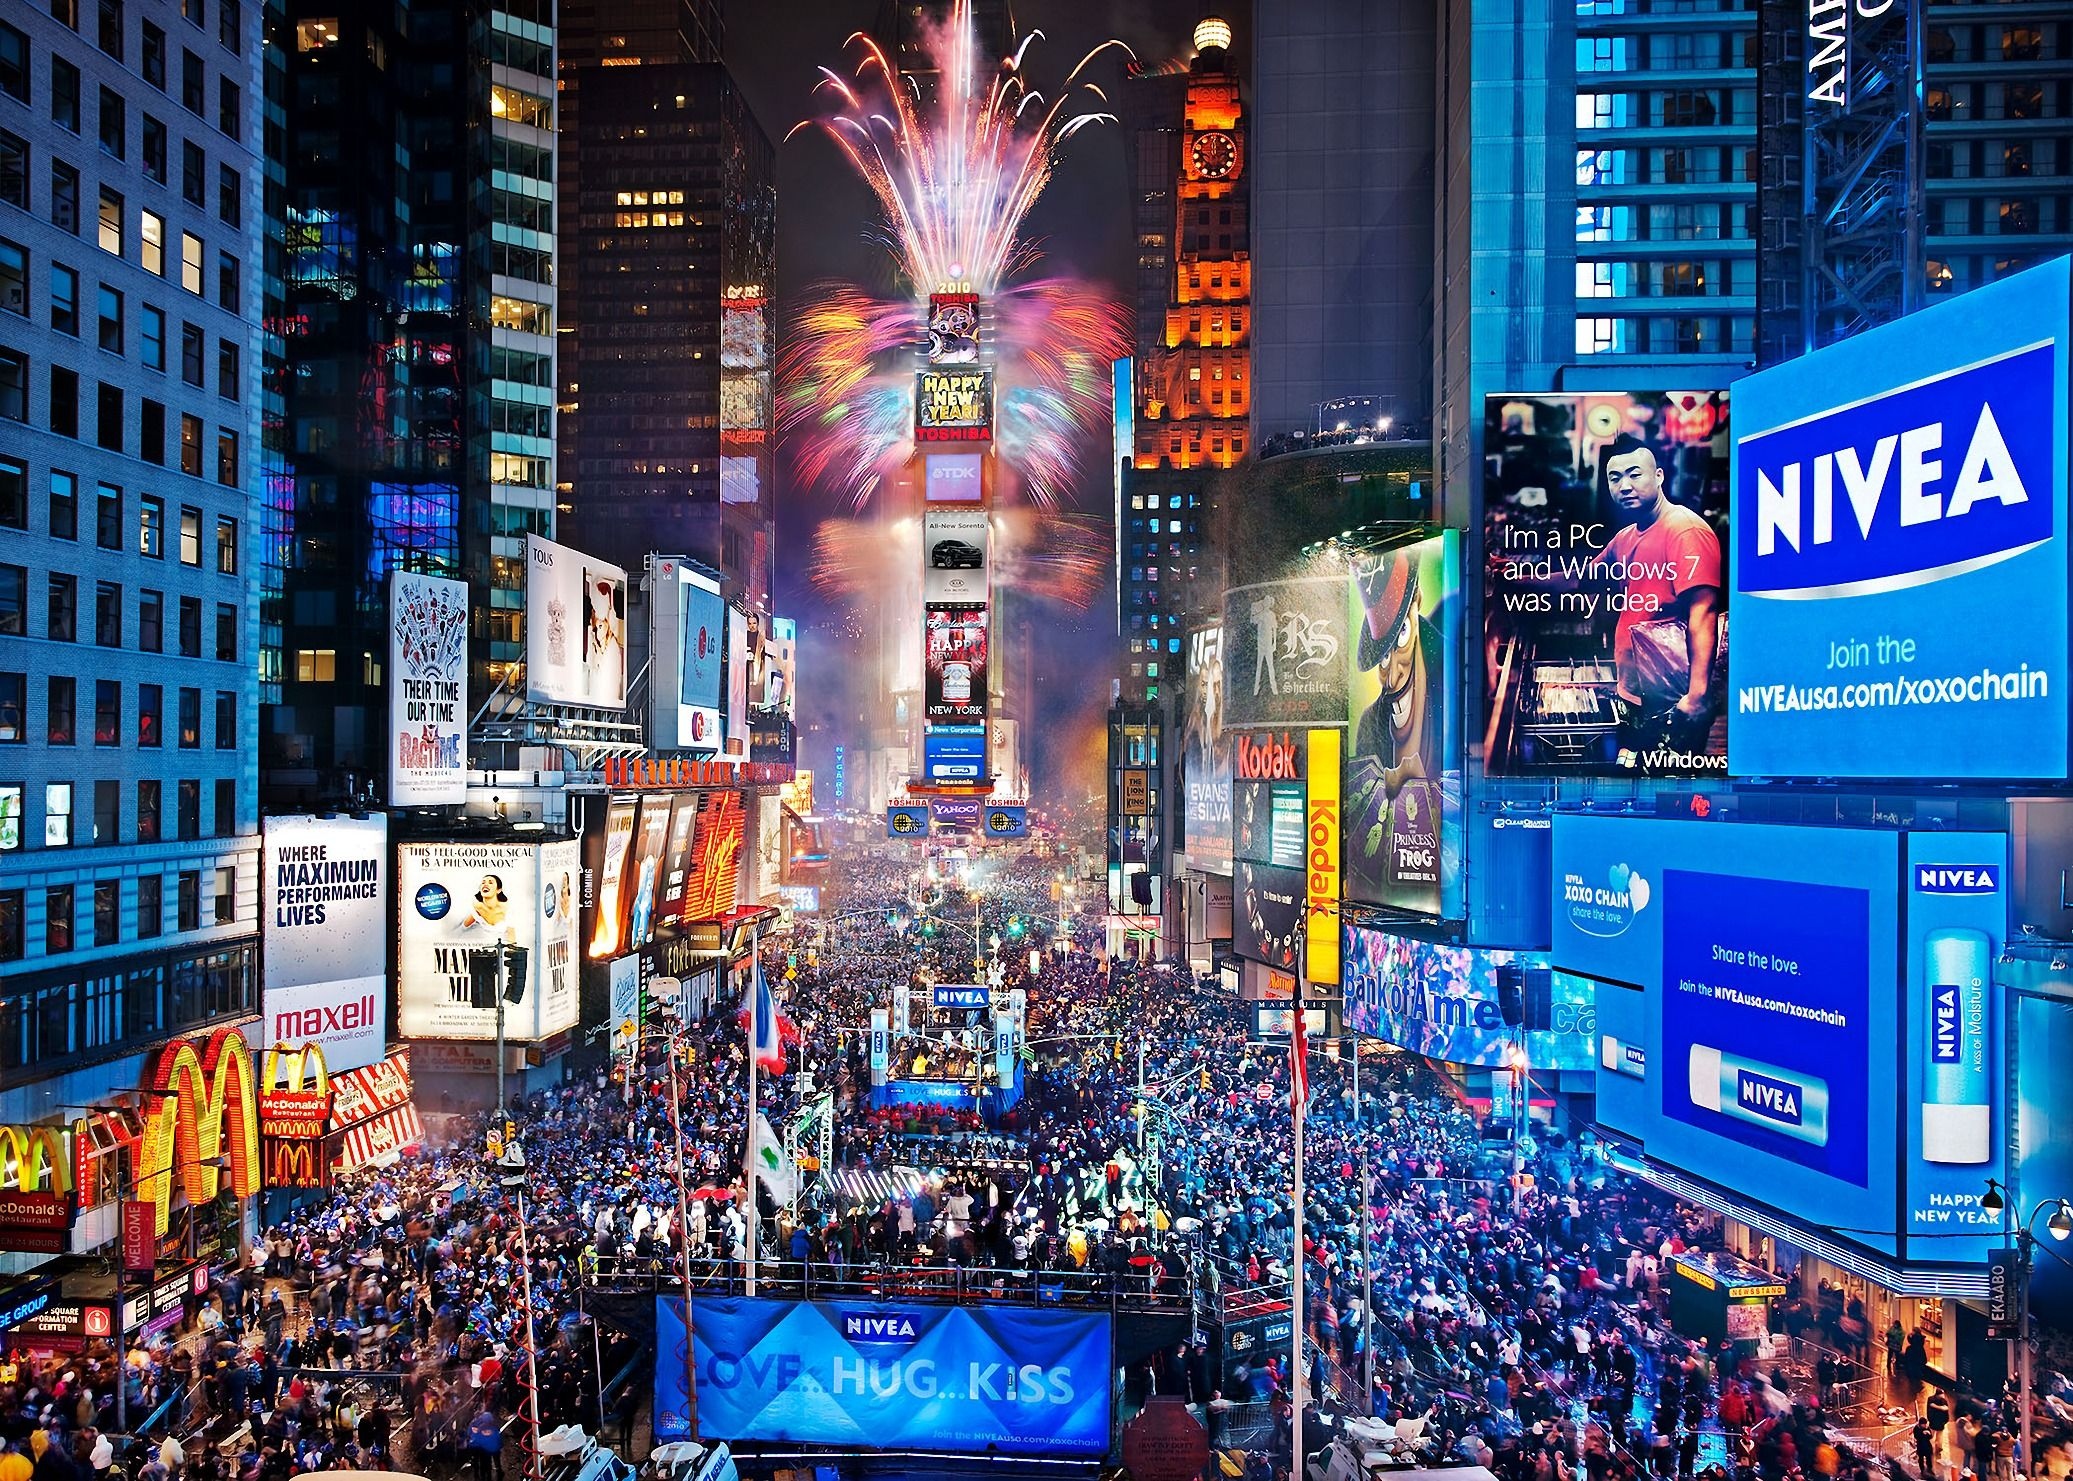 One Day To Times Square For New Years Eve New York New Years Eve New Year S Eve Times Square Times Square Ball Drop